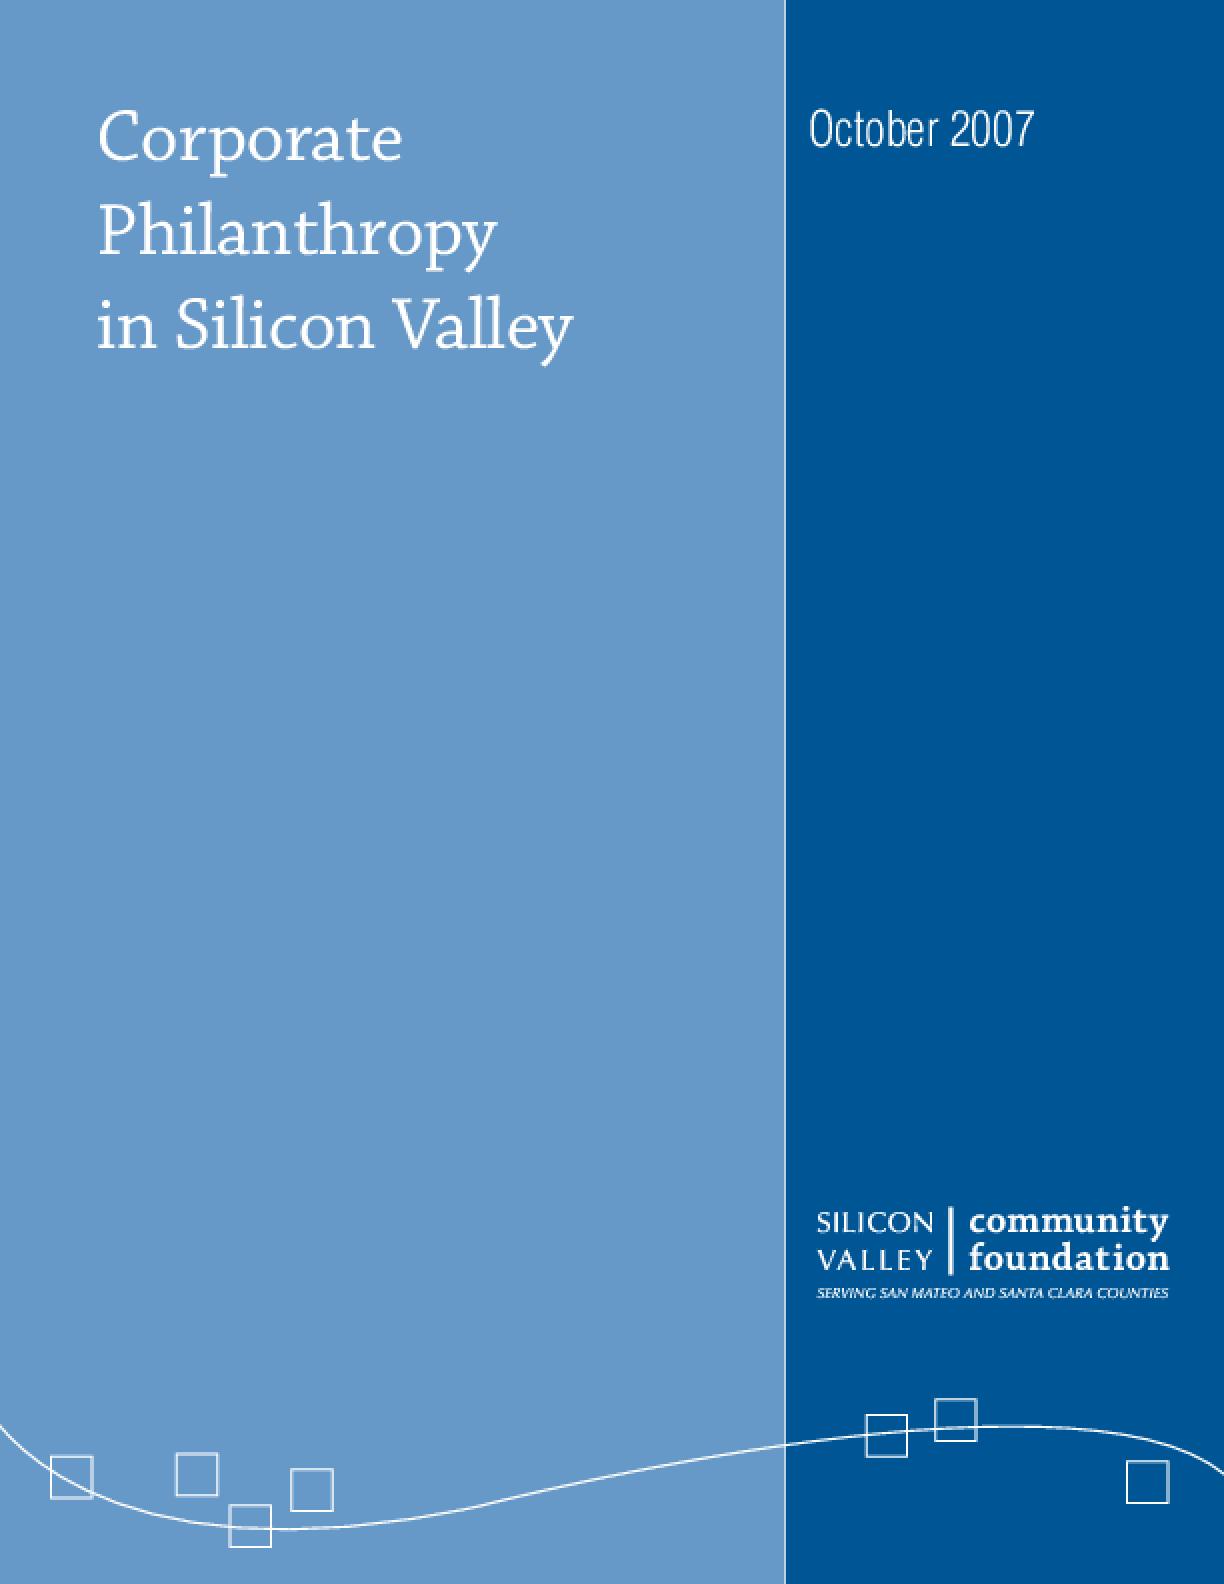 Corporate Philanthropy in Silicon Valley